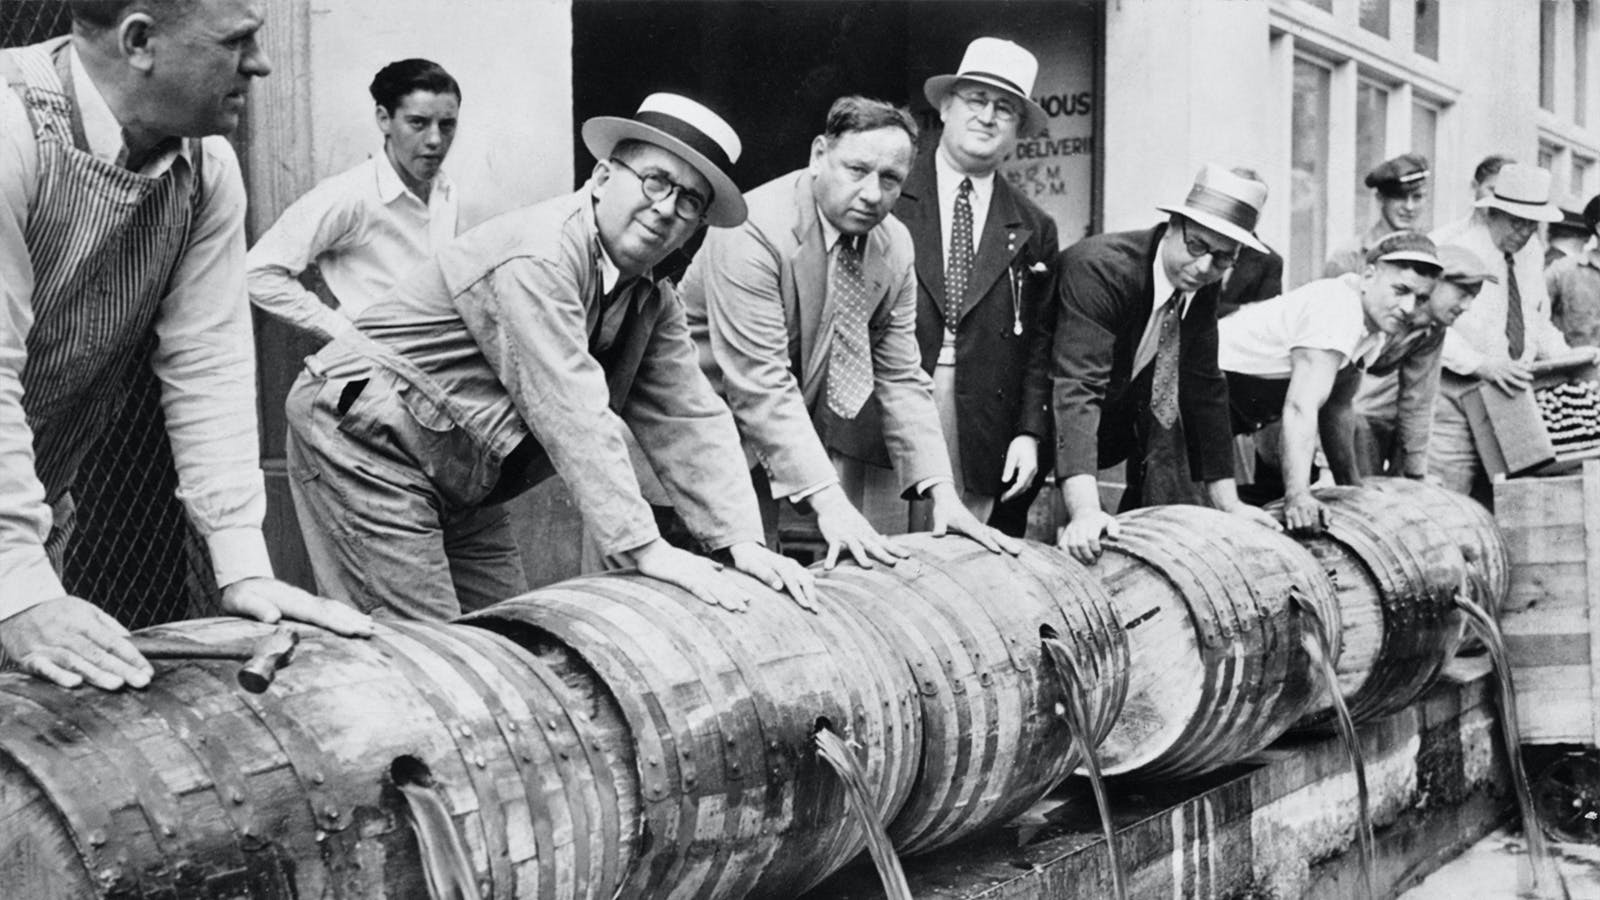 Binge Drinking Is Bad. So Why Is the U.S. Government Targeting Moderate Wine Consumption?